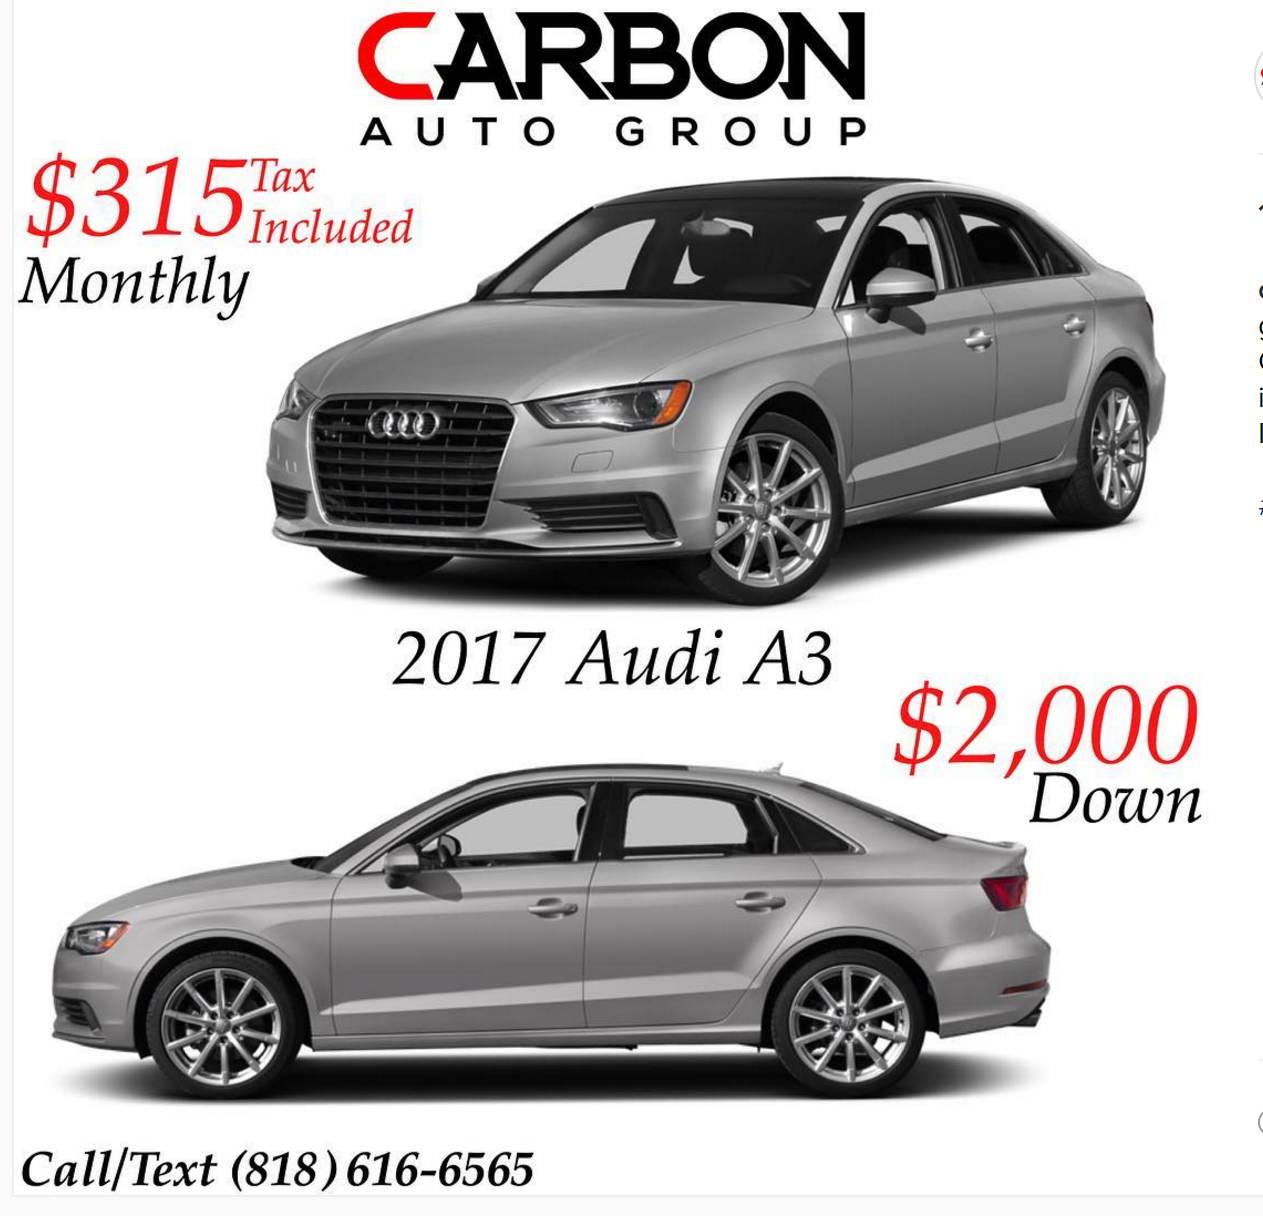 AUDI A Lease Offer From Today Is It Worth Pursuing Ask - Audi s3 lease